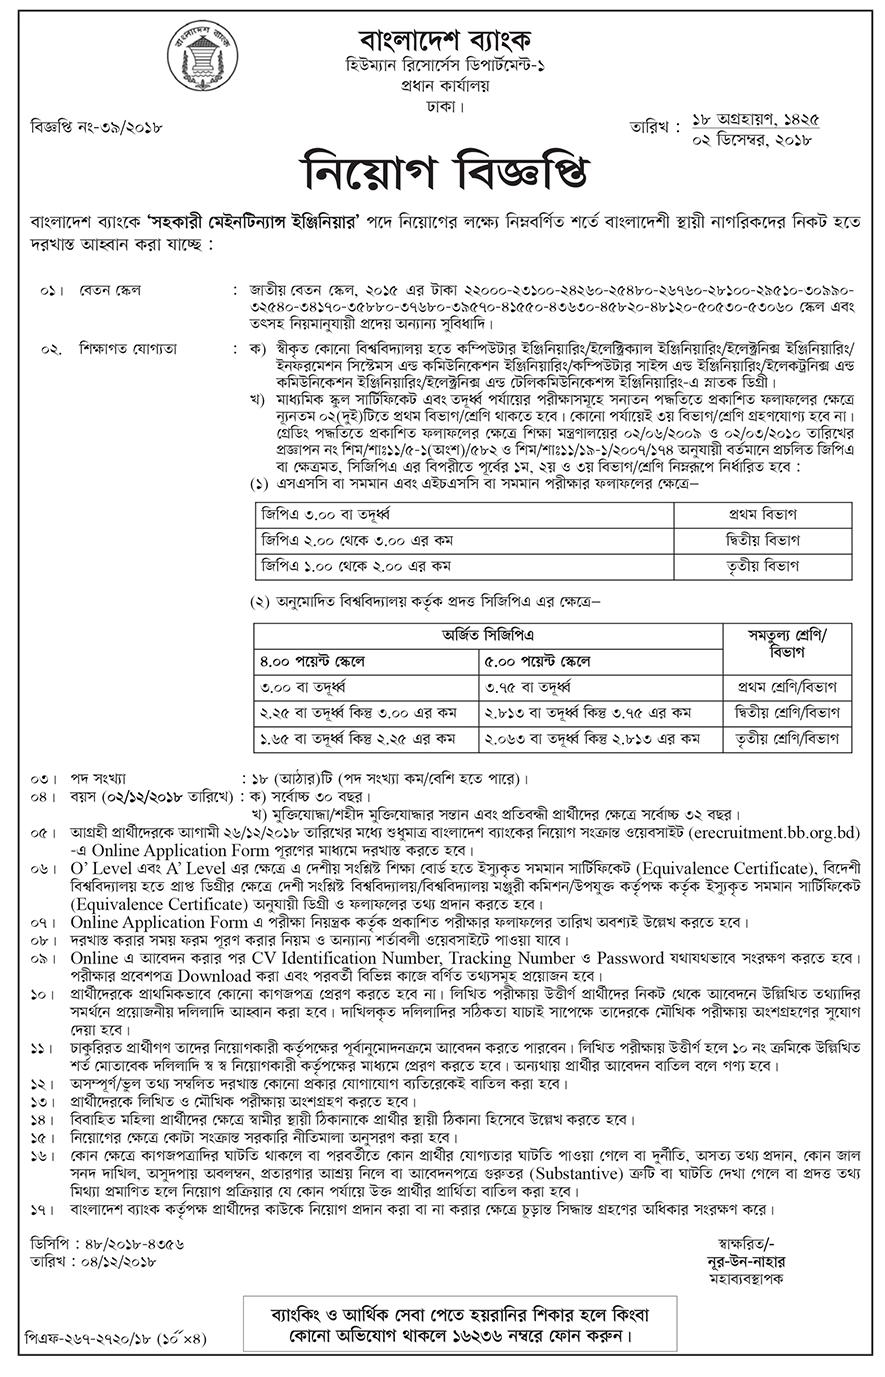 Bangladesh Bank (BB) Assistant Maintenance Engineer Job Circular 2018